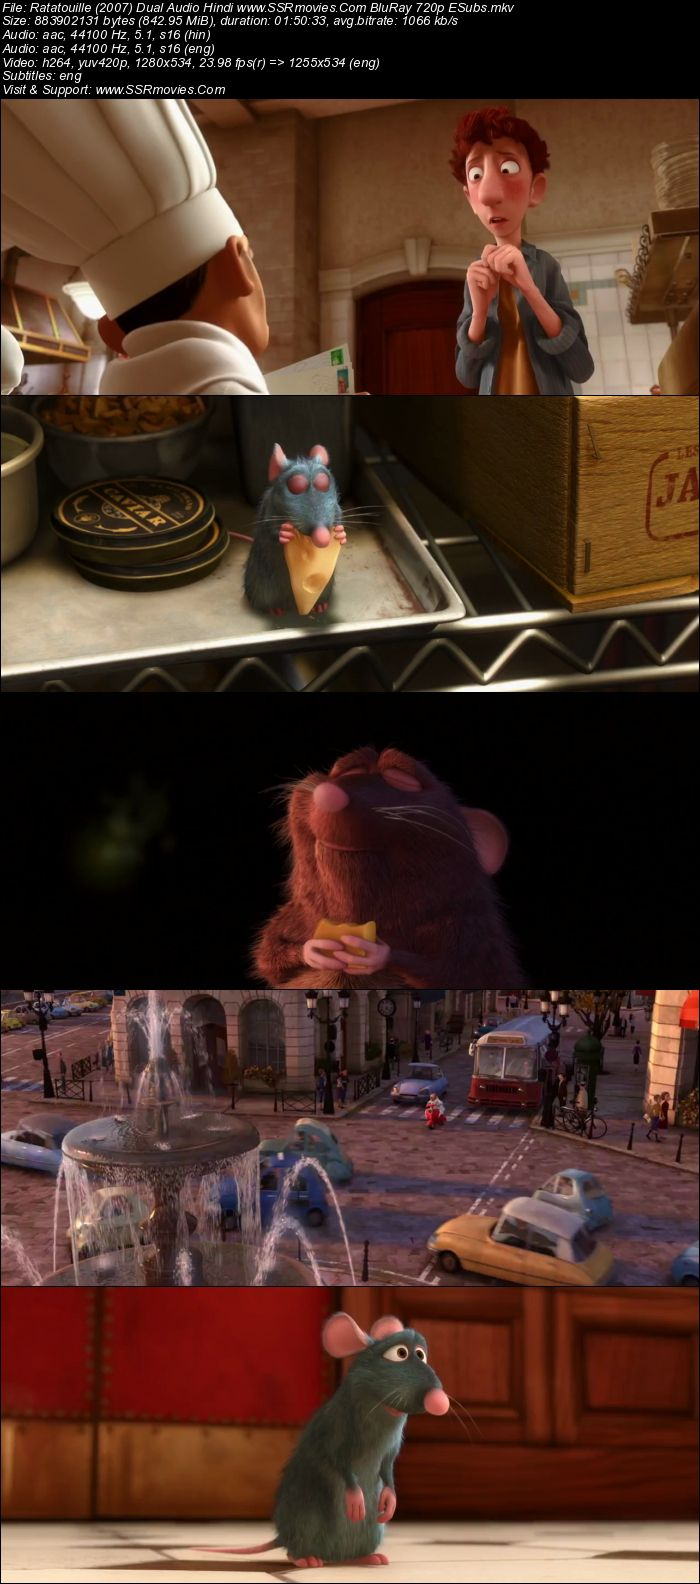 Ratatouille (2007) Dual Audio 720p